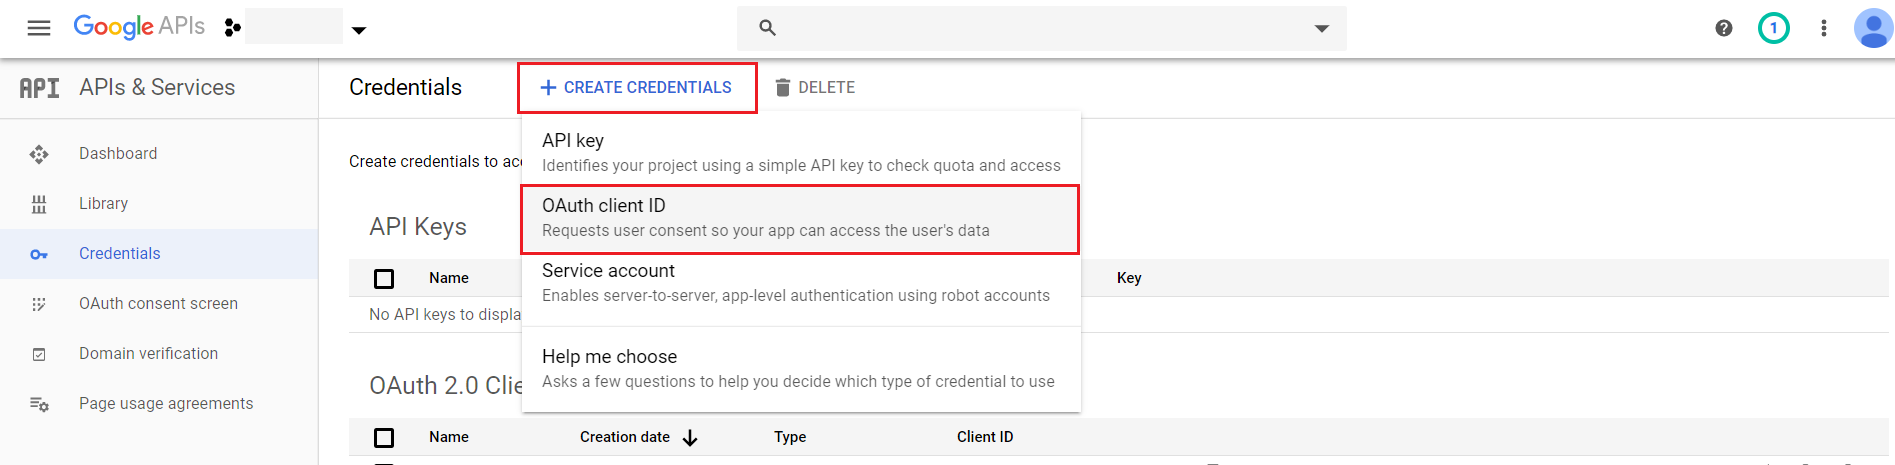 OAuth/OpenID/OIDC Single Sign On (SSO), Google Apps SSO Login OAuth client ID